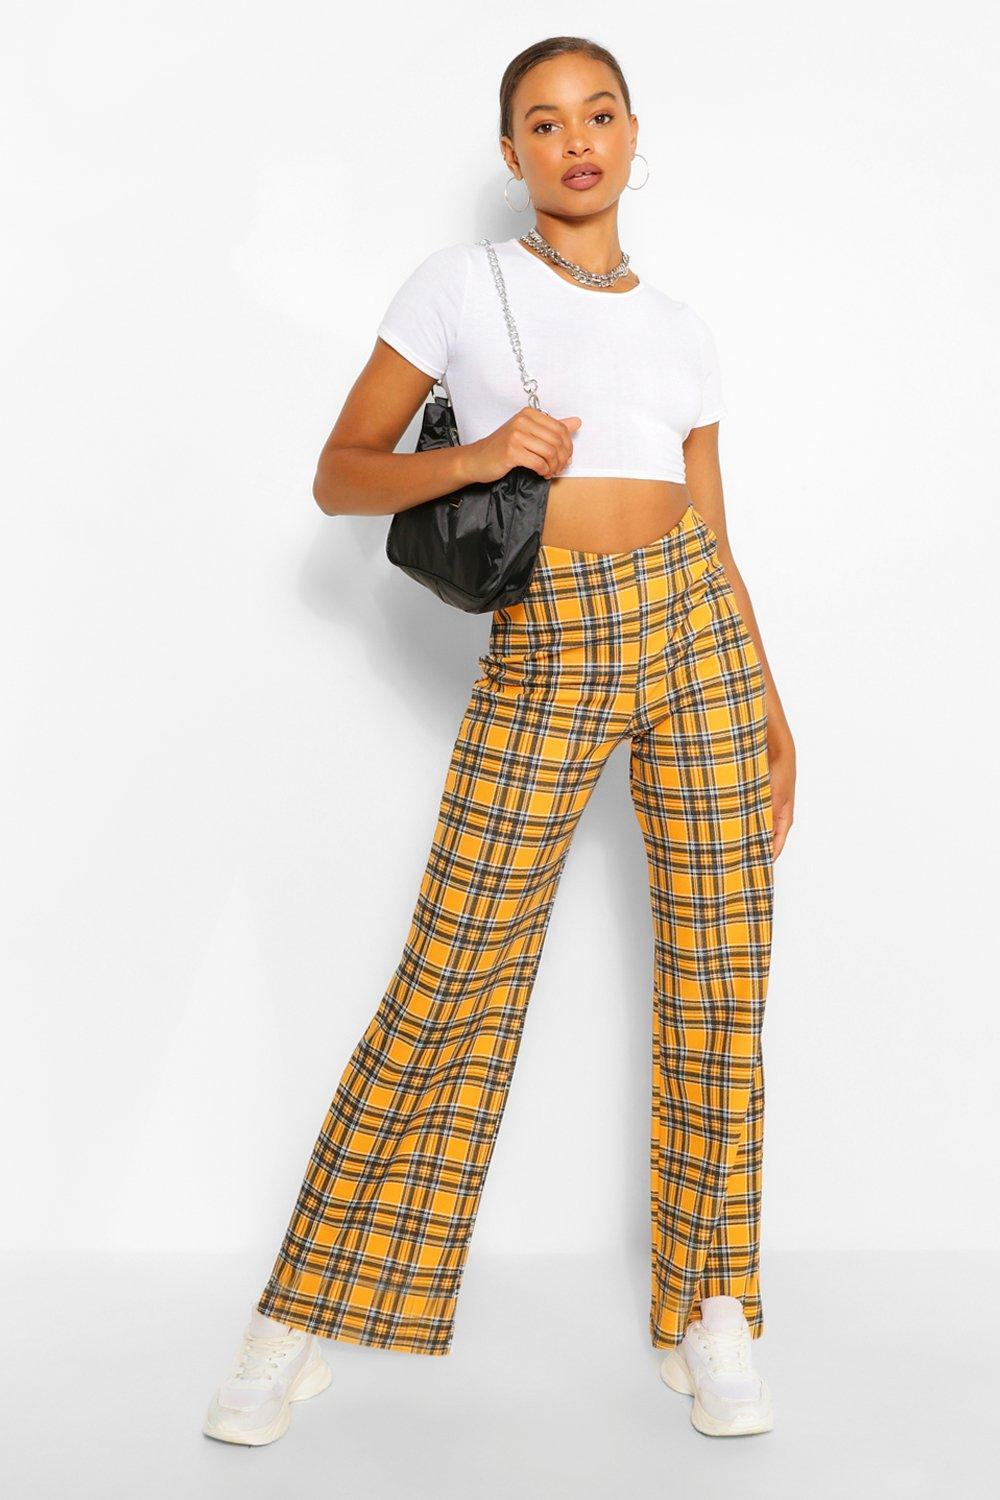 1980s Clothing, Fashion | 80s Style Clothes Womens Flanneled Wide Leg Pants - Yellow - 12 $15.00 AT vintagedancer.com